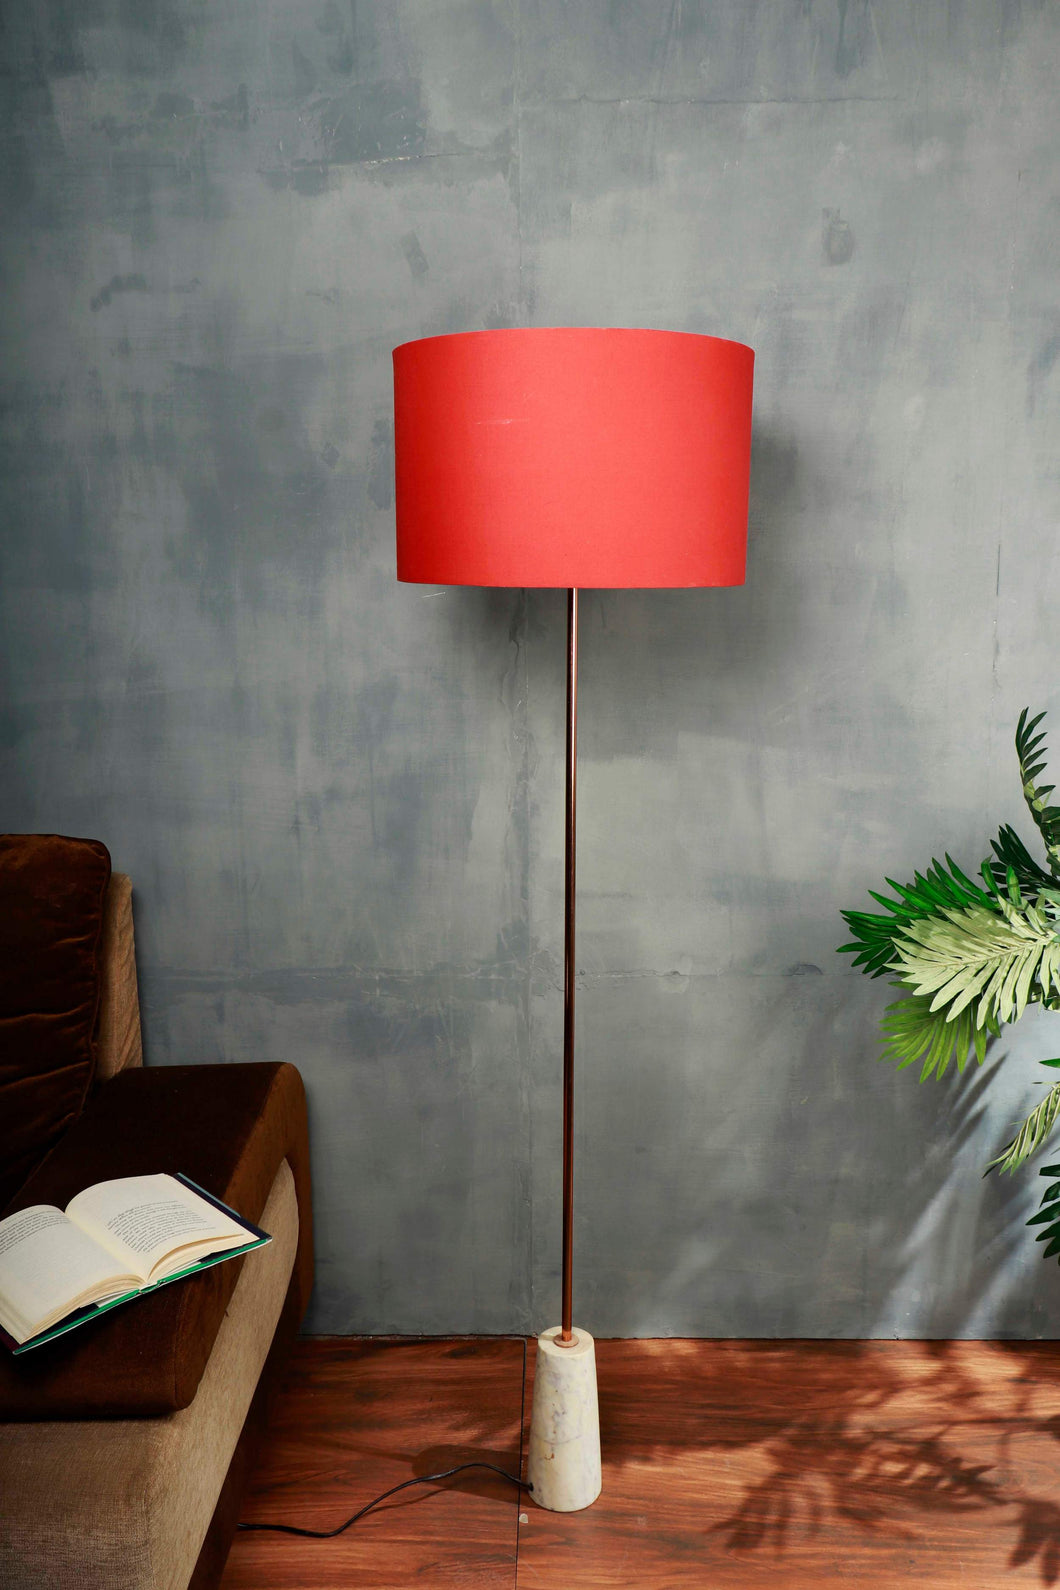 Marble Arrow Lamp Stand with Round Red Lampshade